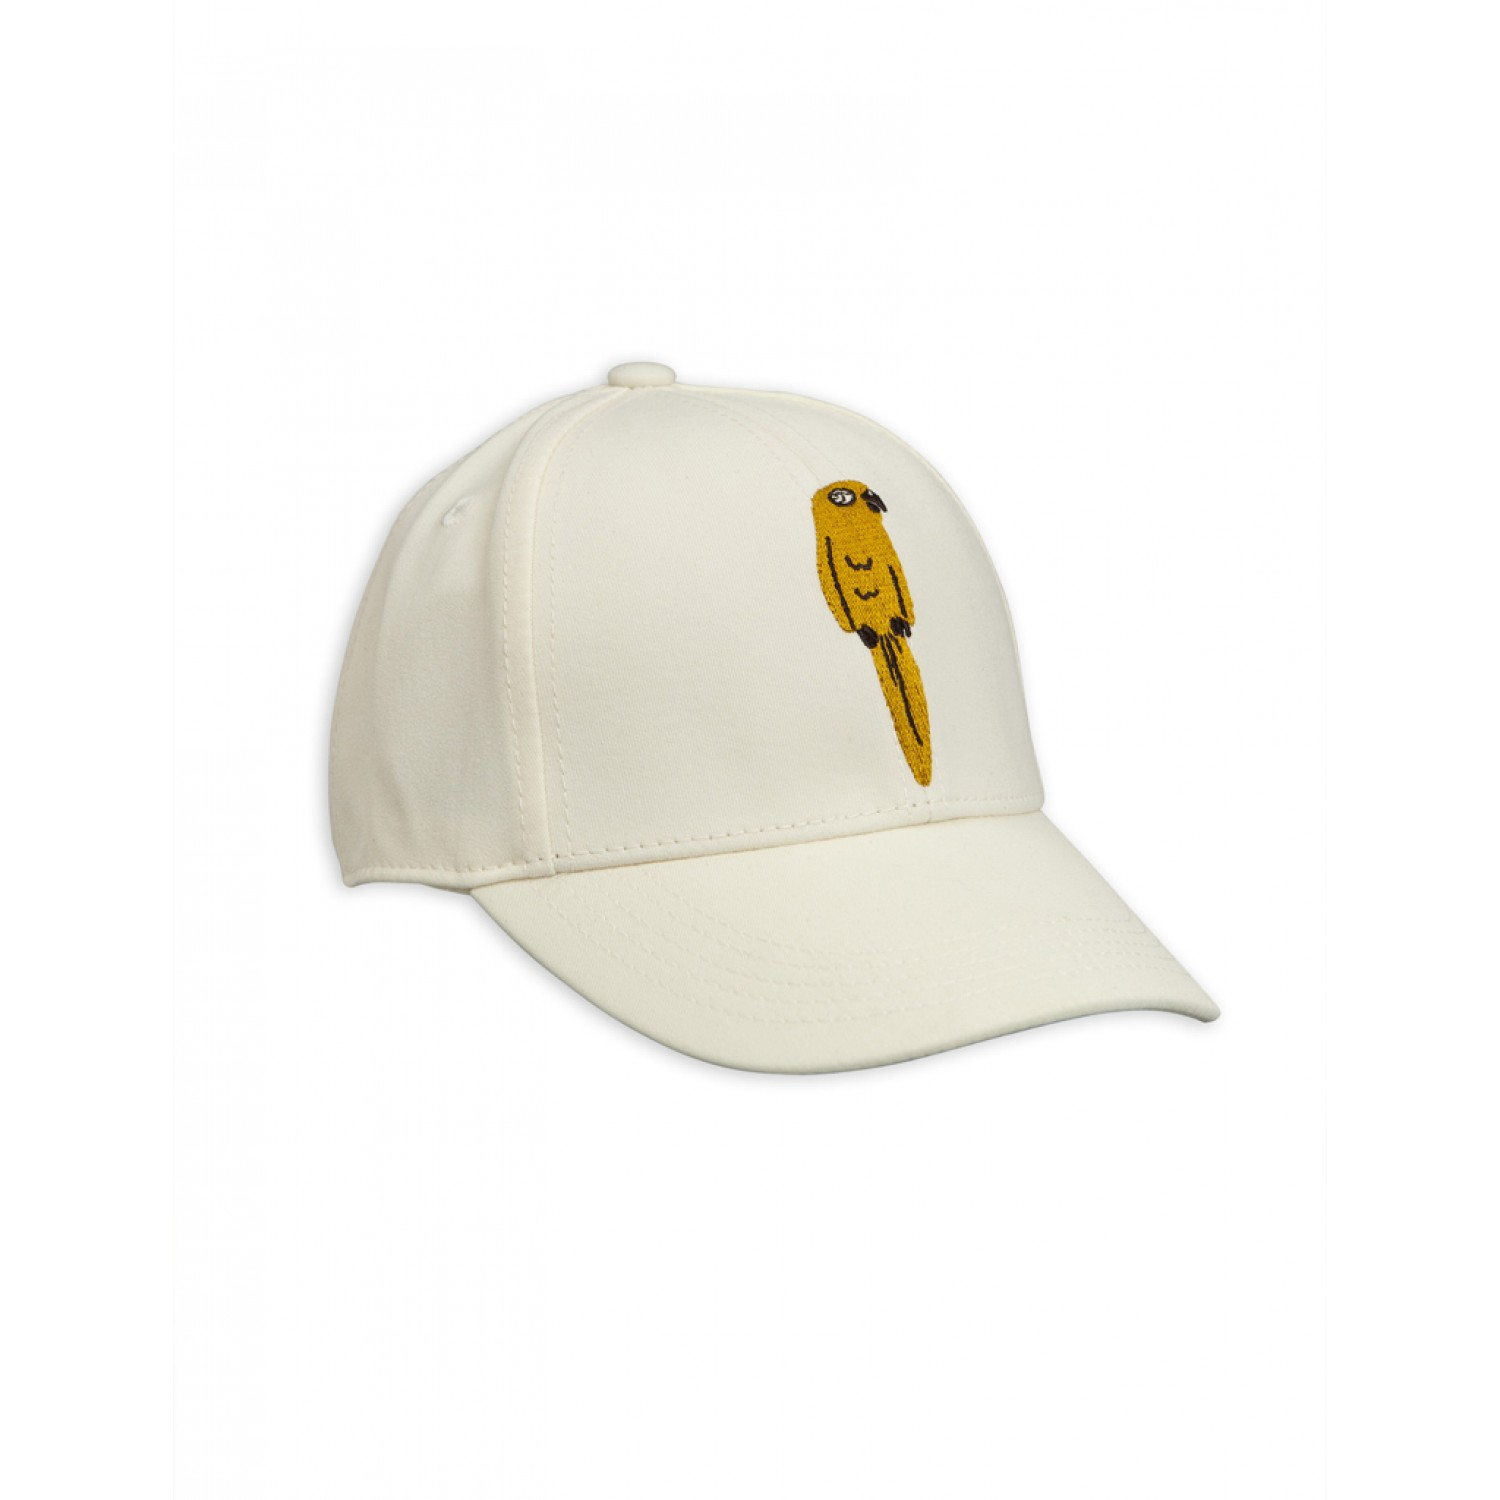 PARROT EMBROIDERY CAP